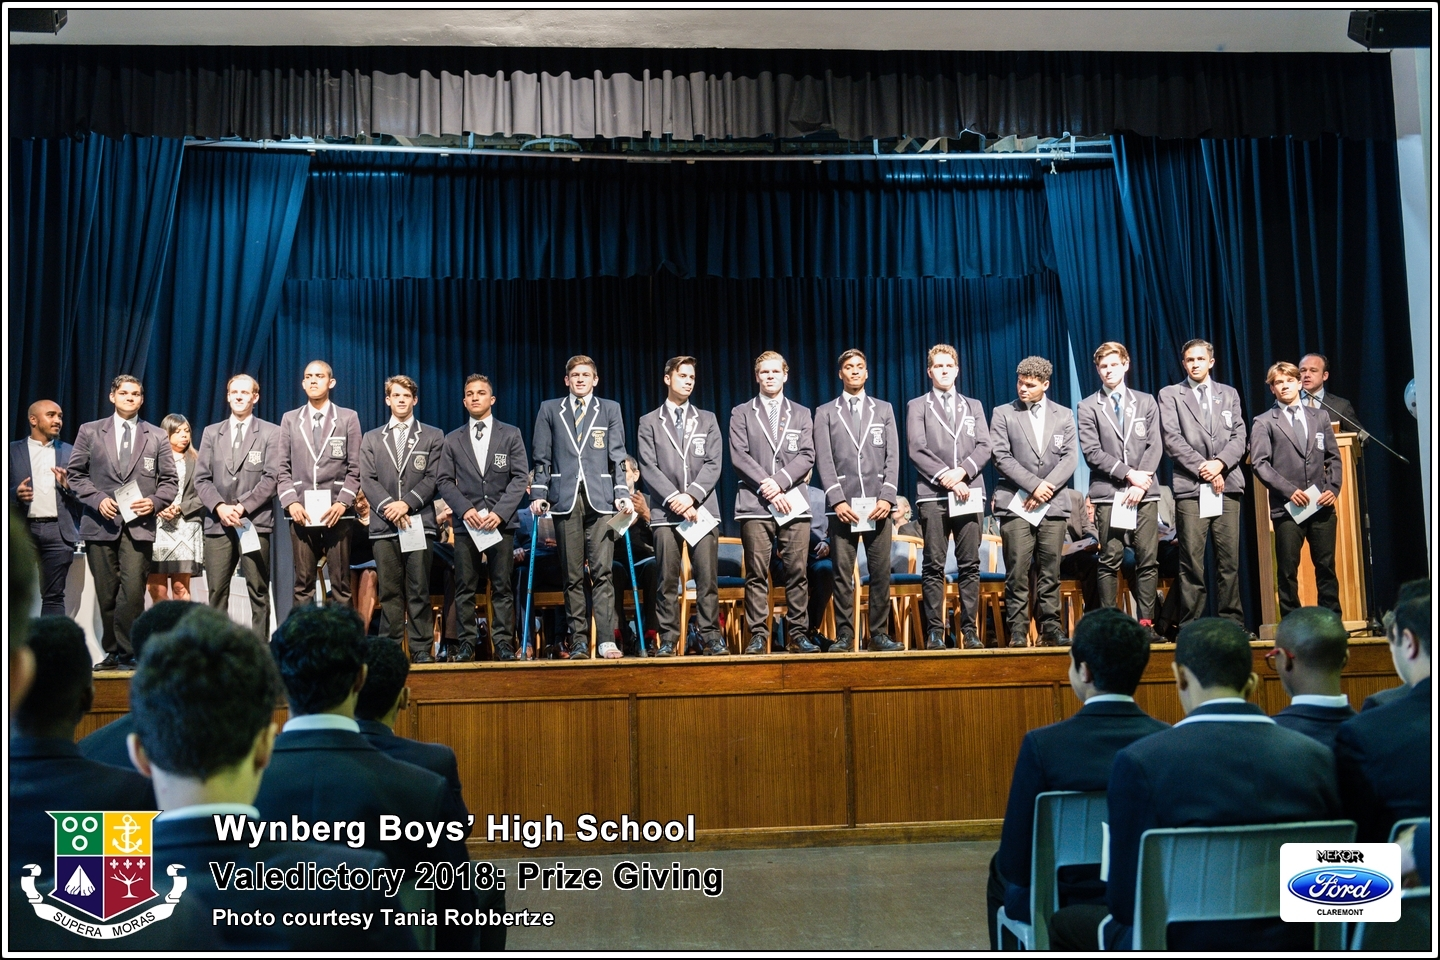 Matric Prize Giving, Album II, Friday 12 October 2018